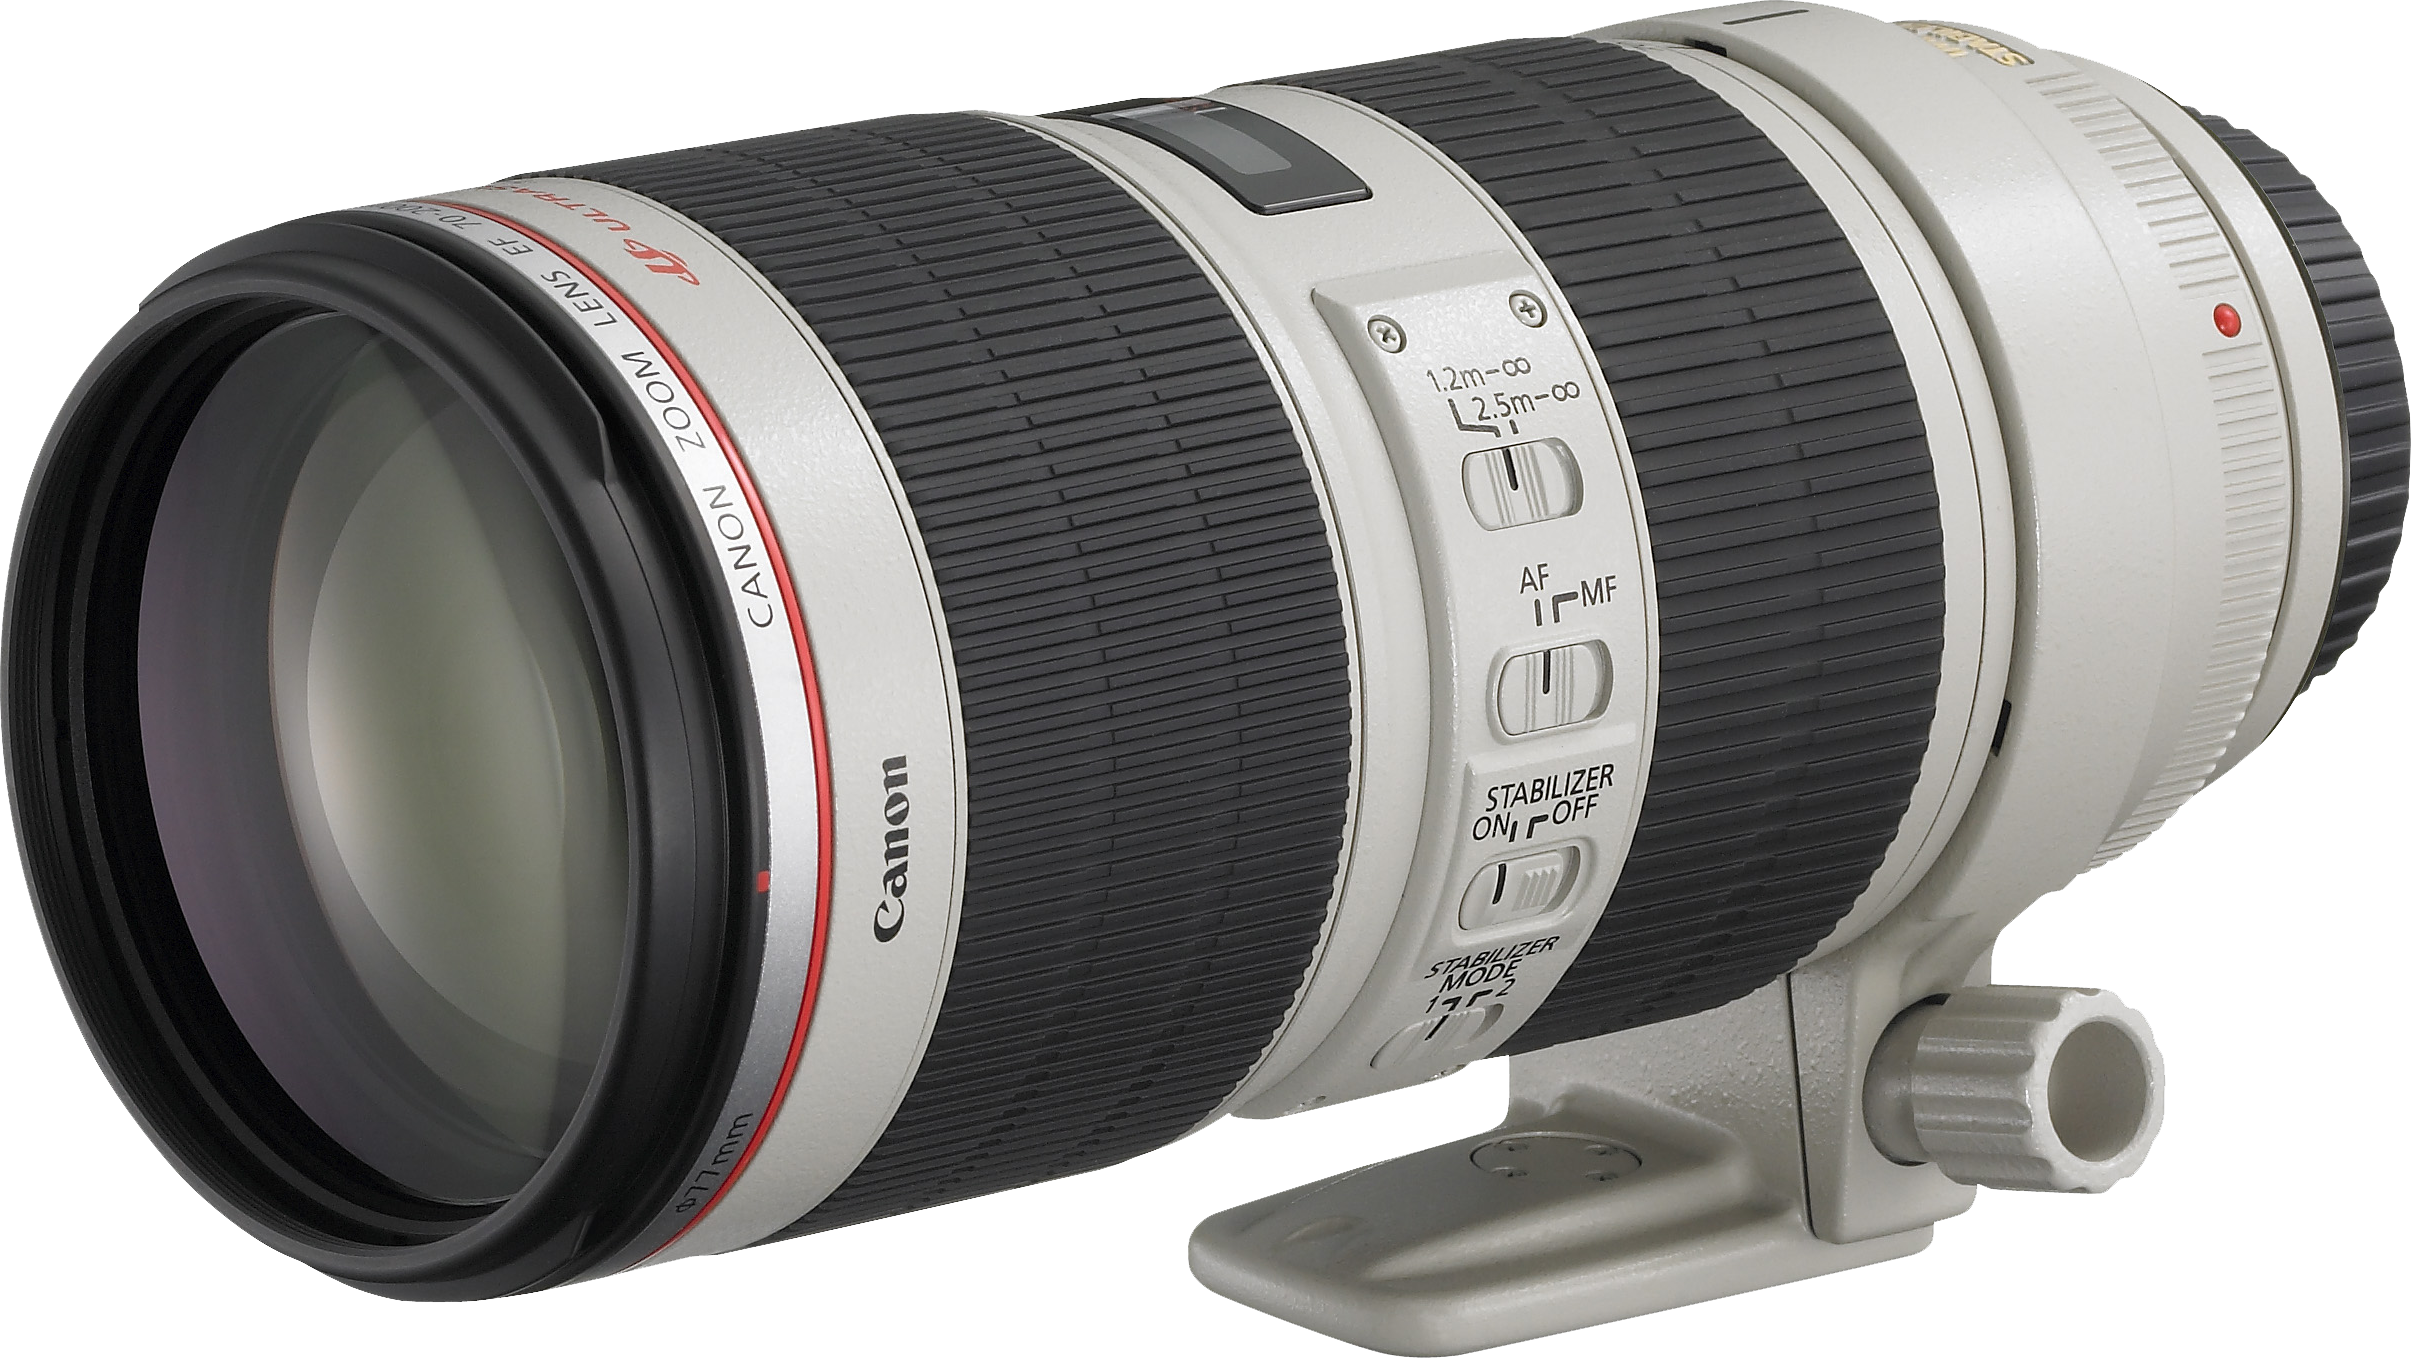 Canon EF 70-200mm f/2.8L IS II USM – 90 RON